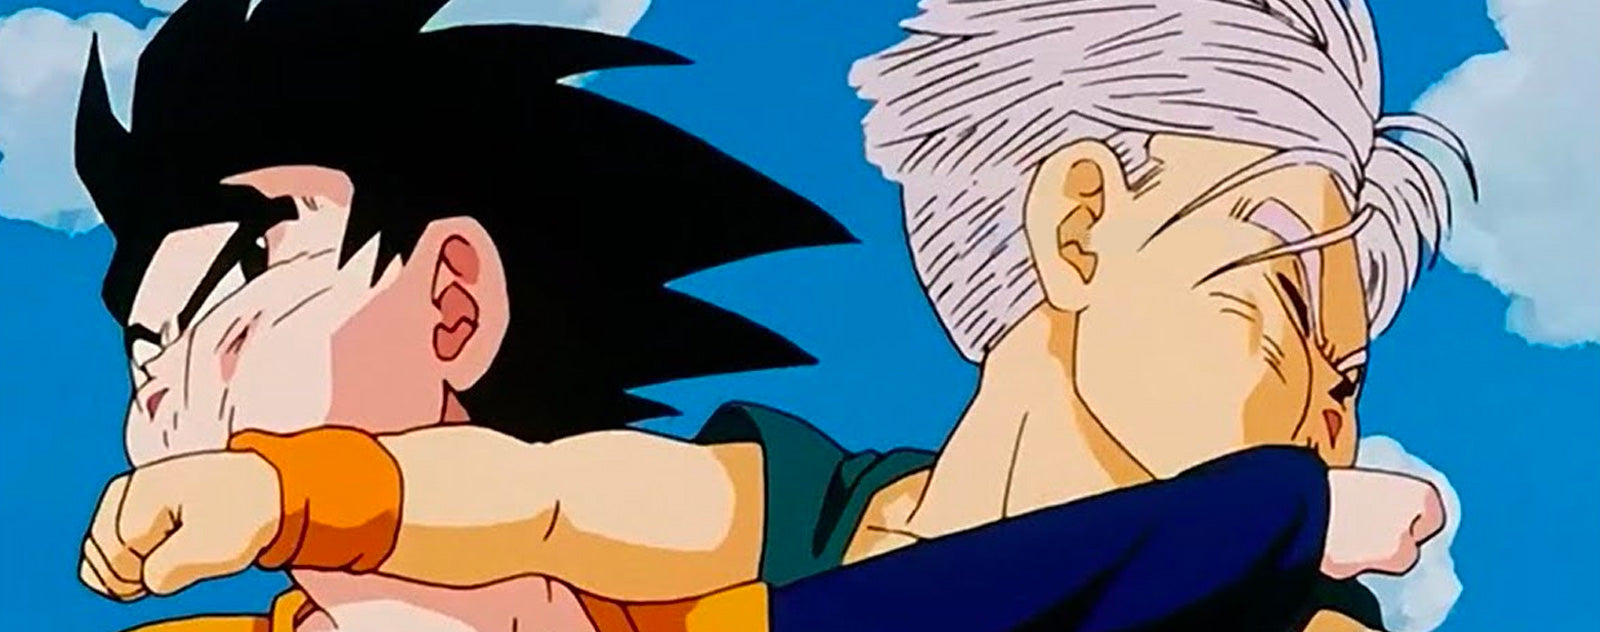 Trunks vs Goten